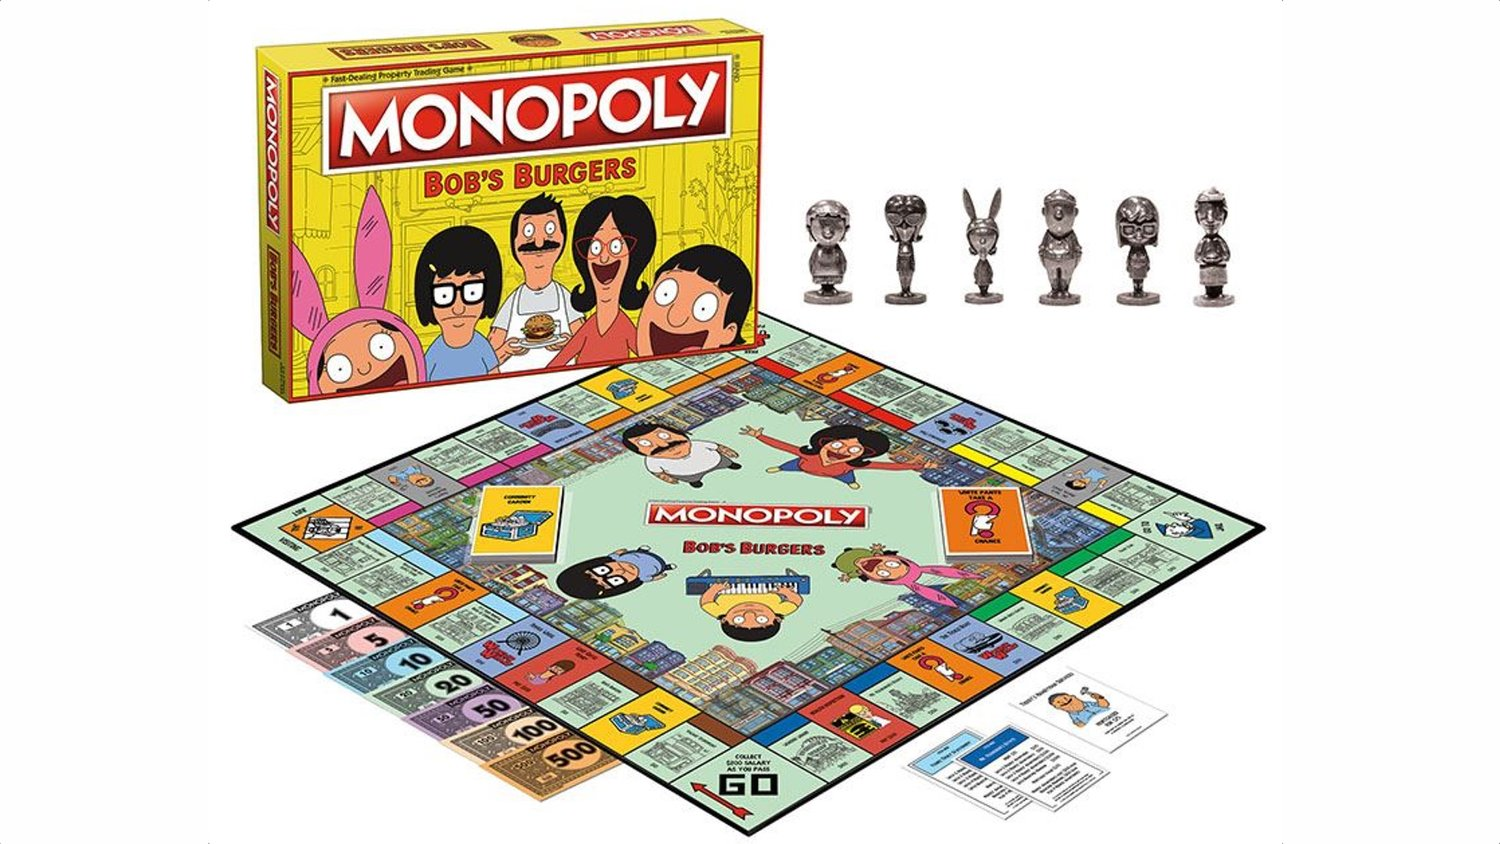 BOB'S BURGERS Gets Its Own Special Edition Monopoly Game